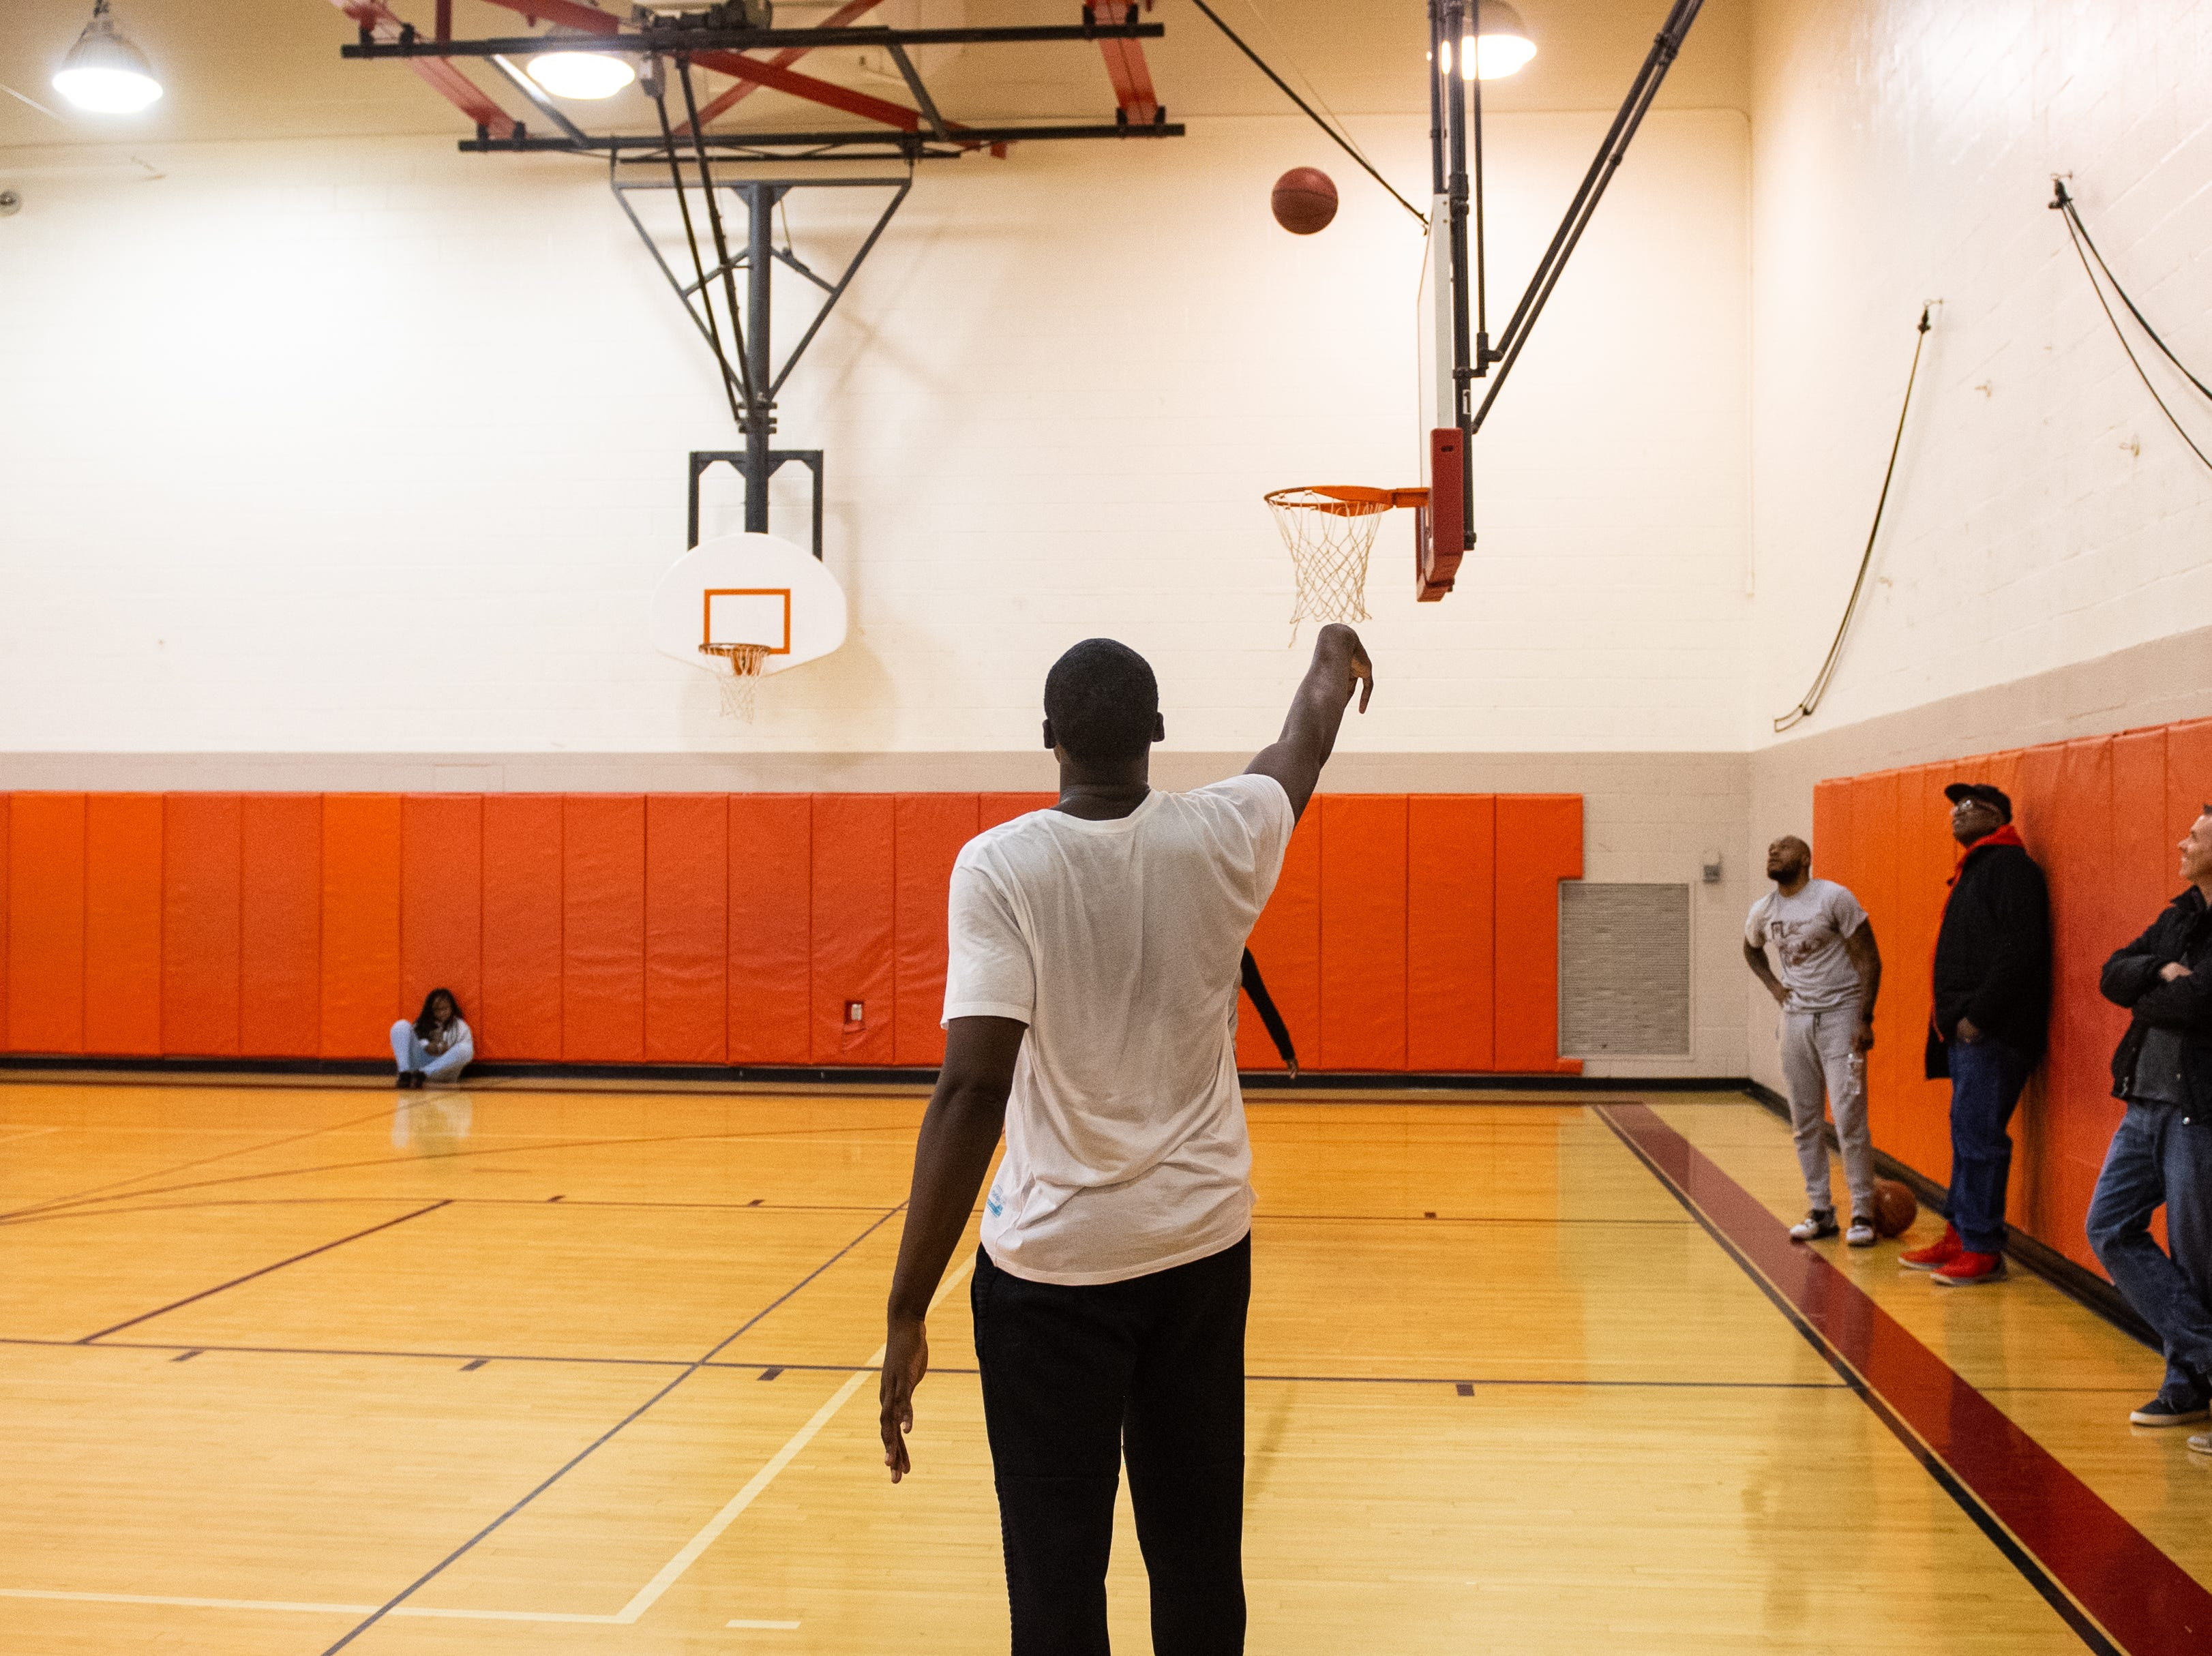 Jarace Walker trained in one of Susquehannock High School's gyms. He hadn't shot on any of their rims since his last home basketball game a year ago.